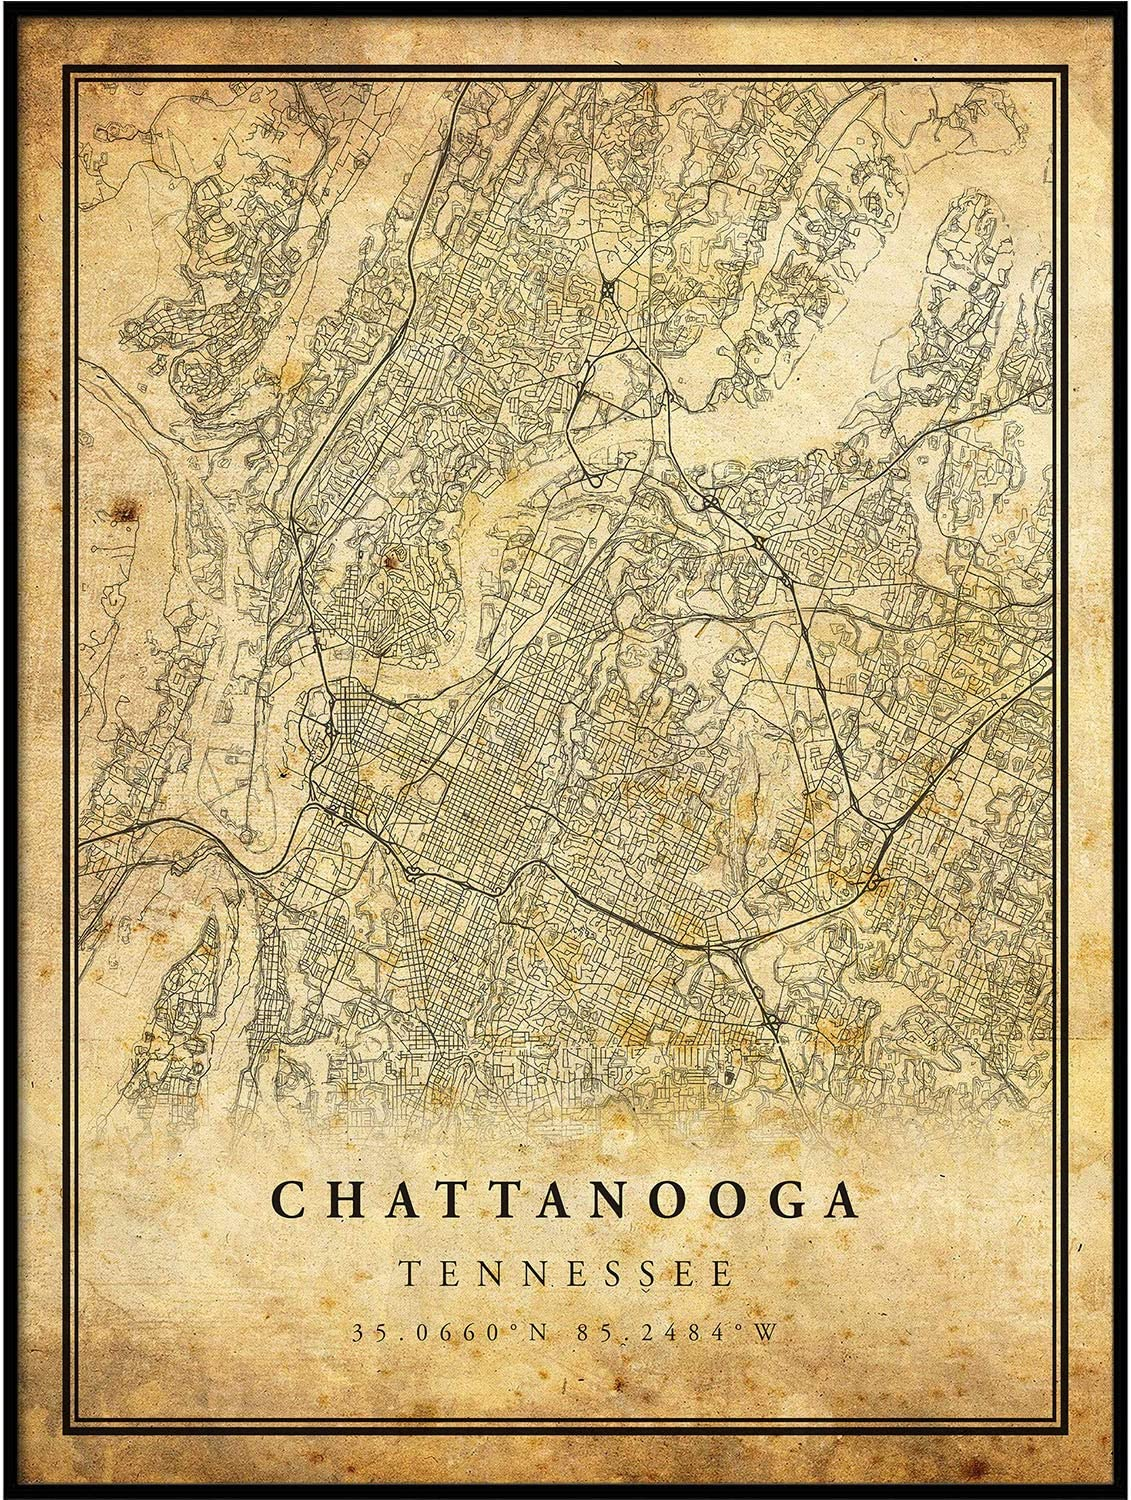 Chattanooga map Vintage Style Poster Print | Old City Artwork Prints | Antique Style Home Decor | Tennessee Wall Art Gift | map Antique 8.5x11